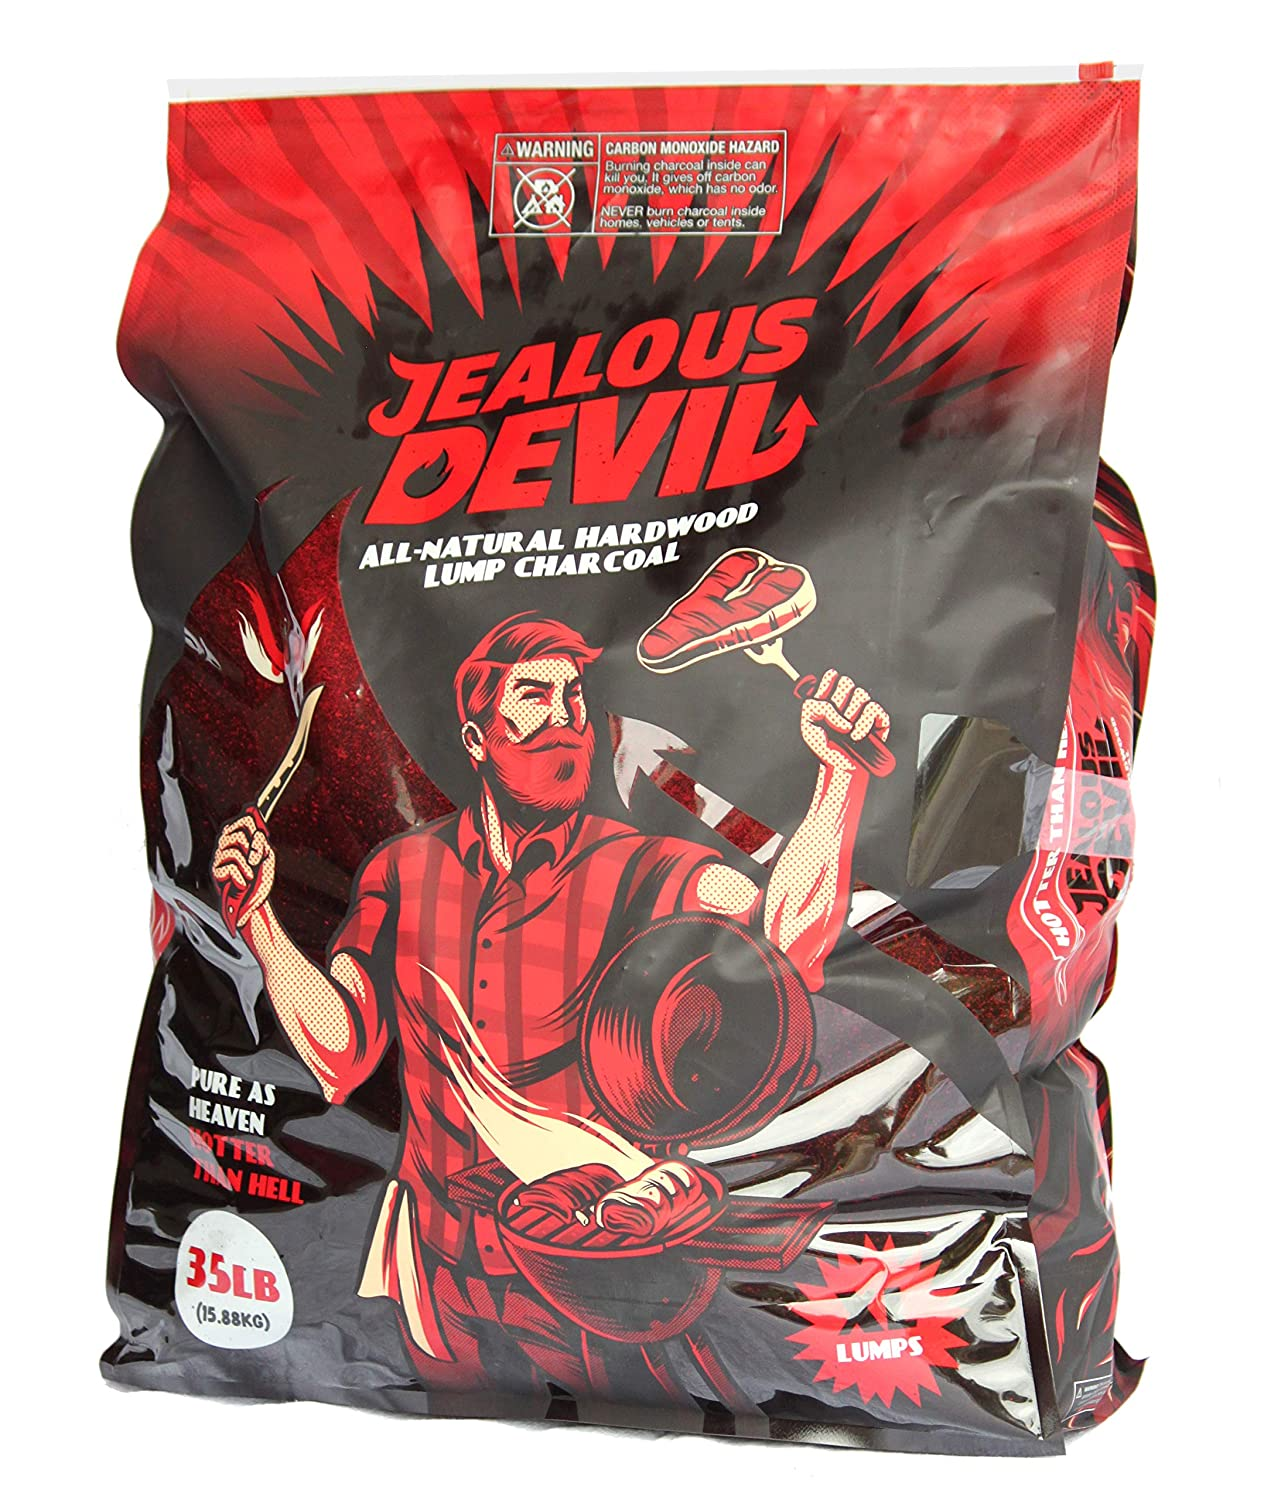 Jealous Devil All Natural Hardwood Lump Charcoal - 35LB